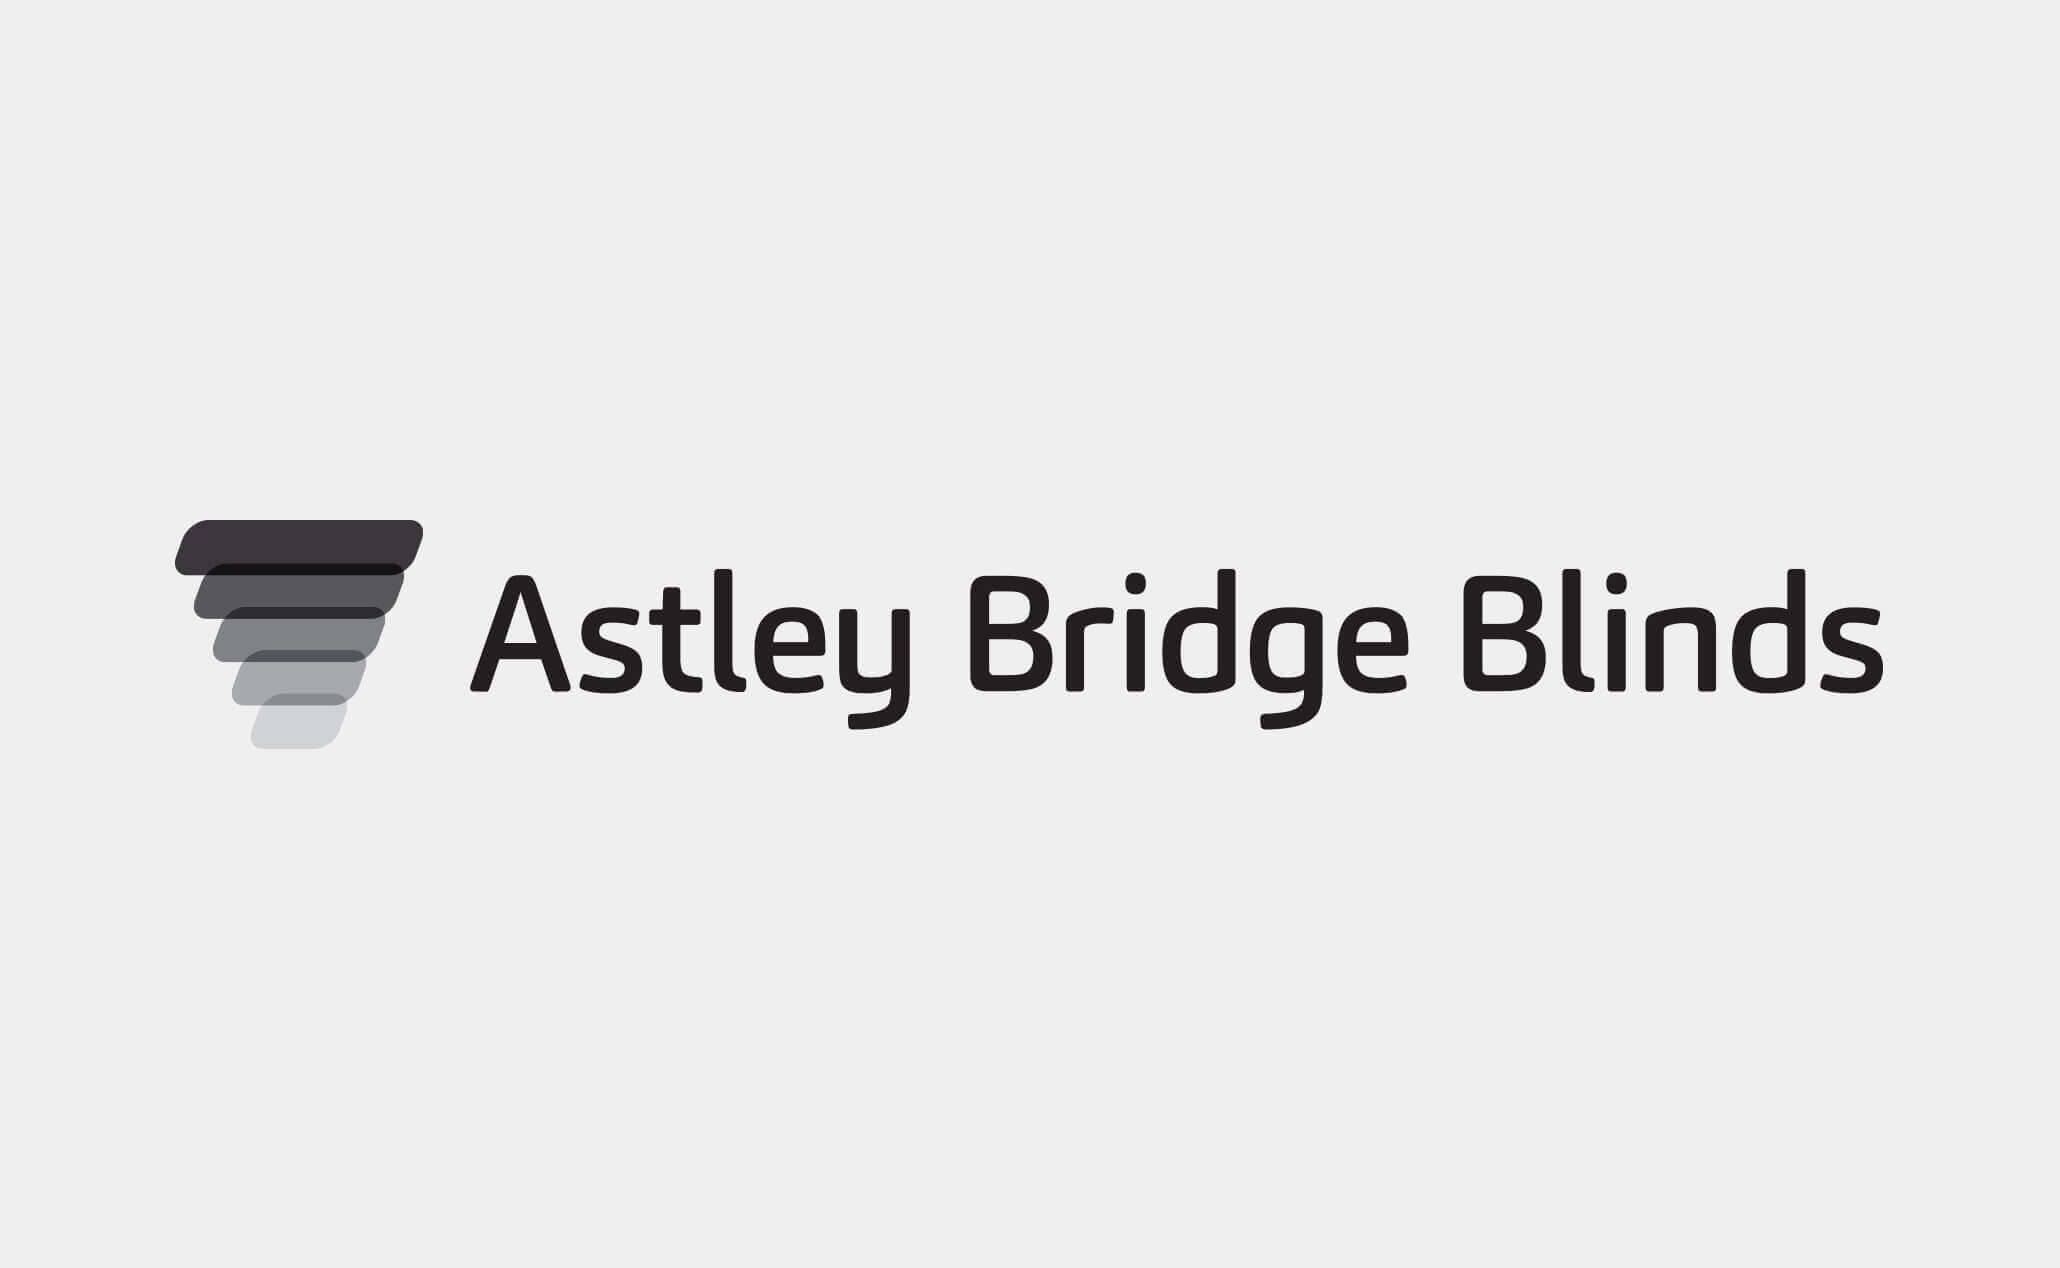 Astley-Bridge-Blinds-logo